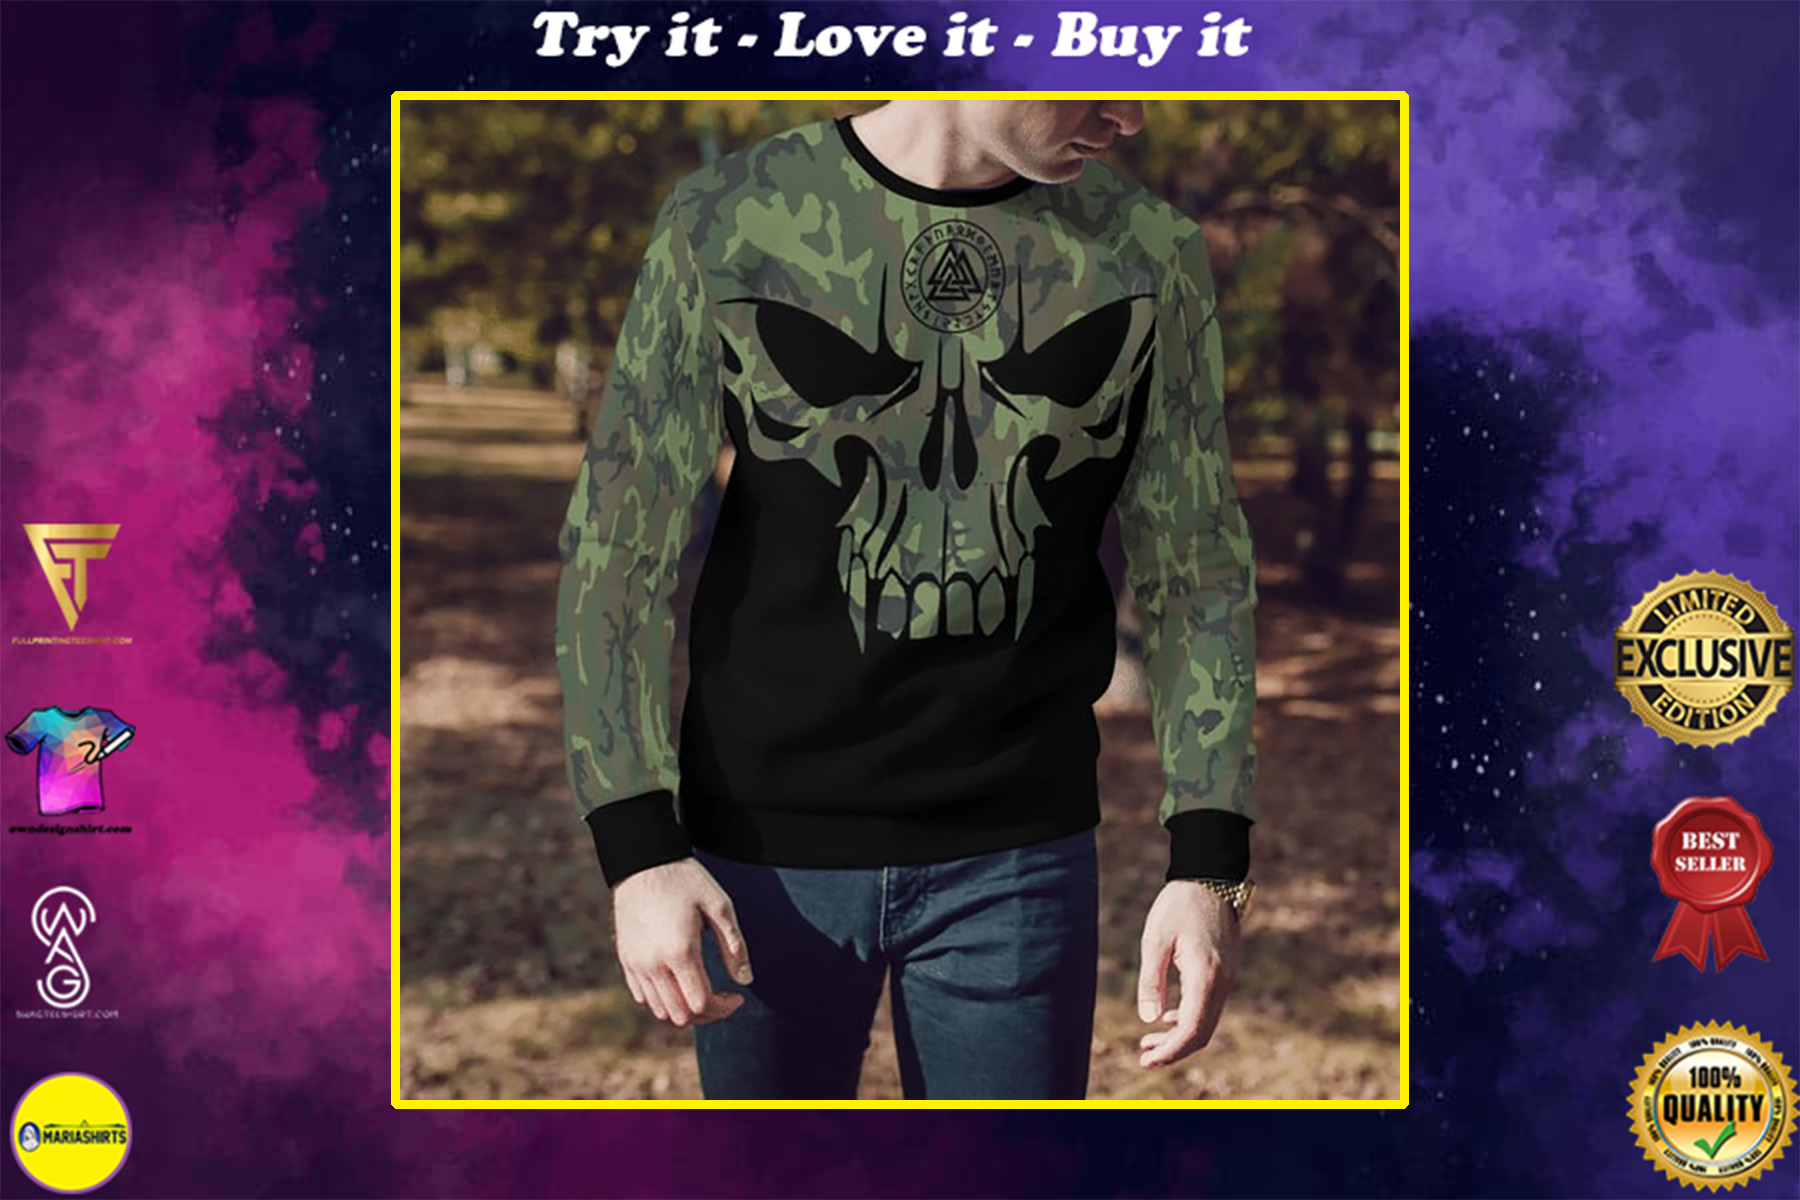 viking son of odin die in battle and go to valhalla all over printed shirt